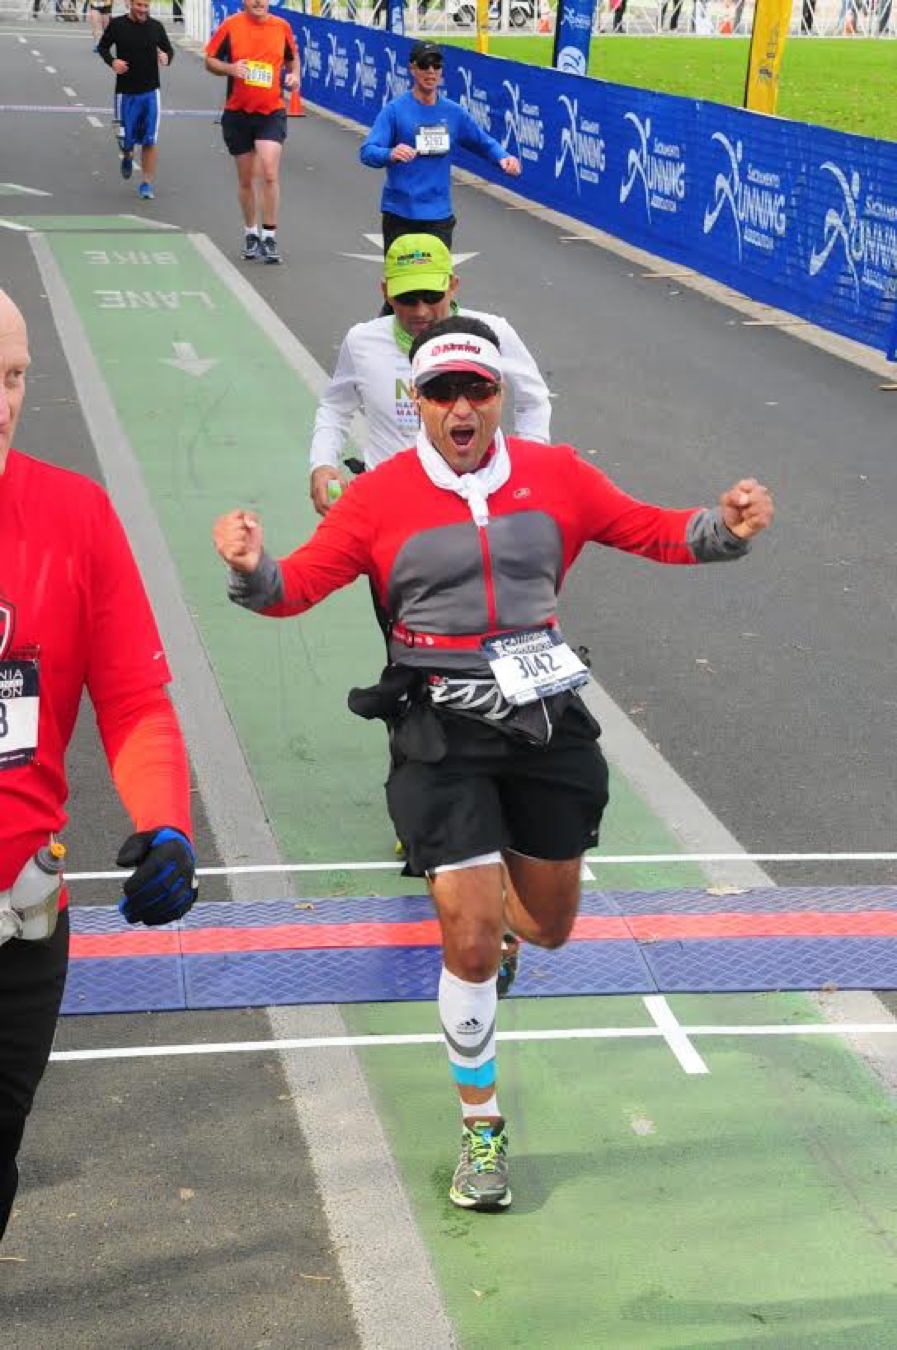 Albert D. at CIM December 2016, powerful expression after crossing the finish line of his first marathon